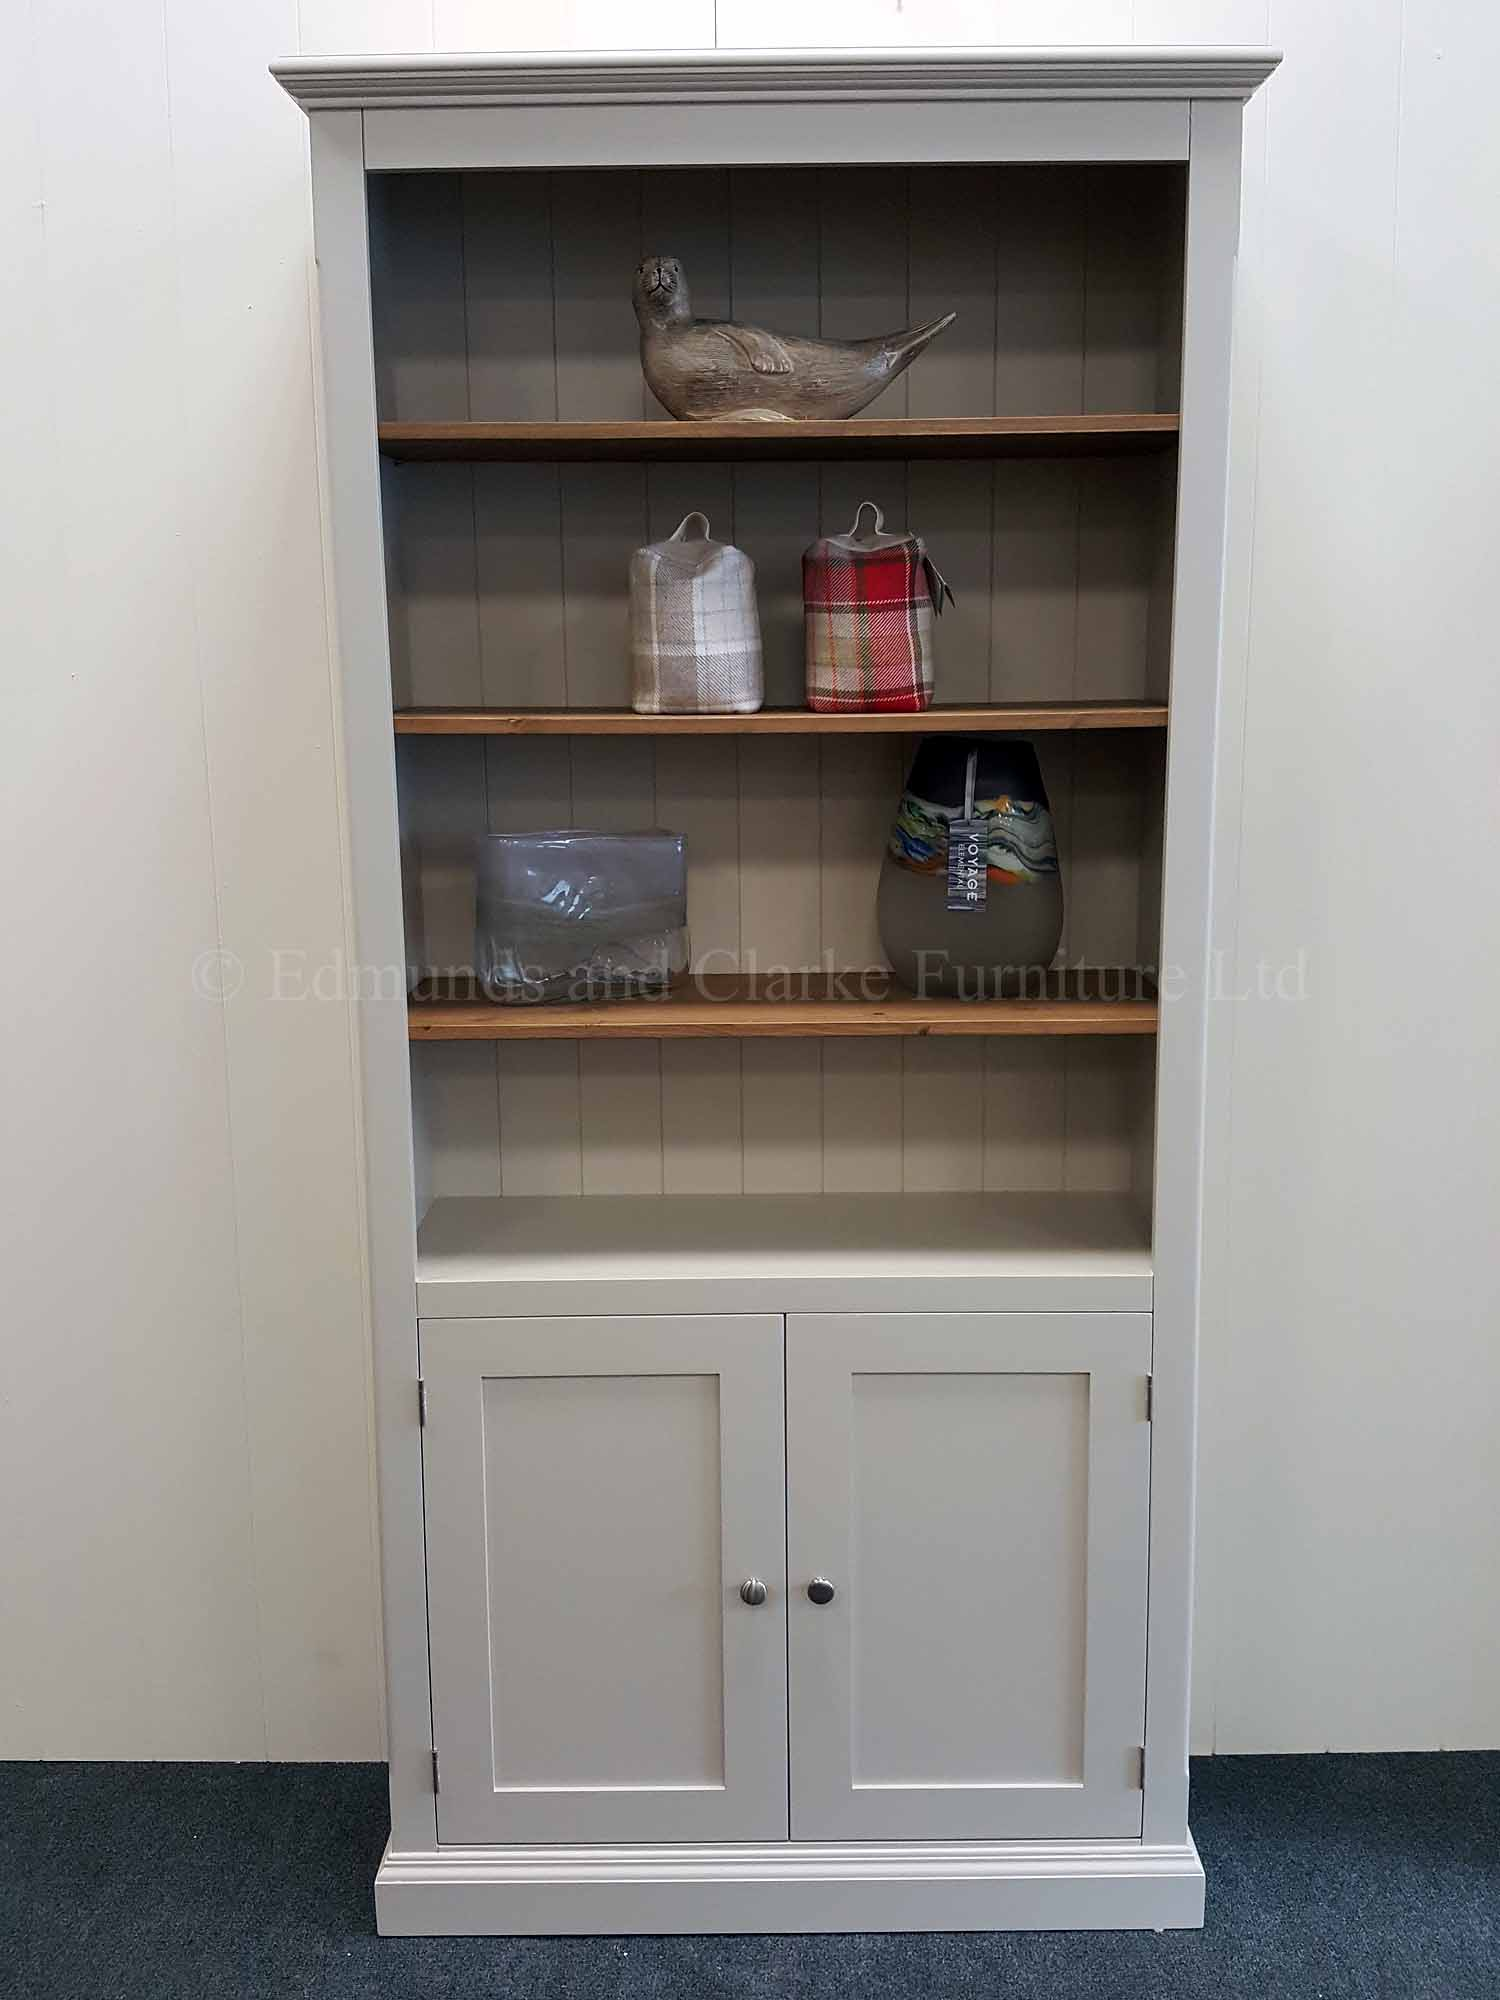 Edmunds Painted Bookcase With Cupboard. image shown painted with pine shelves